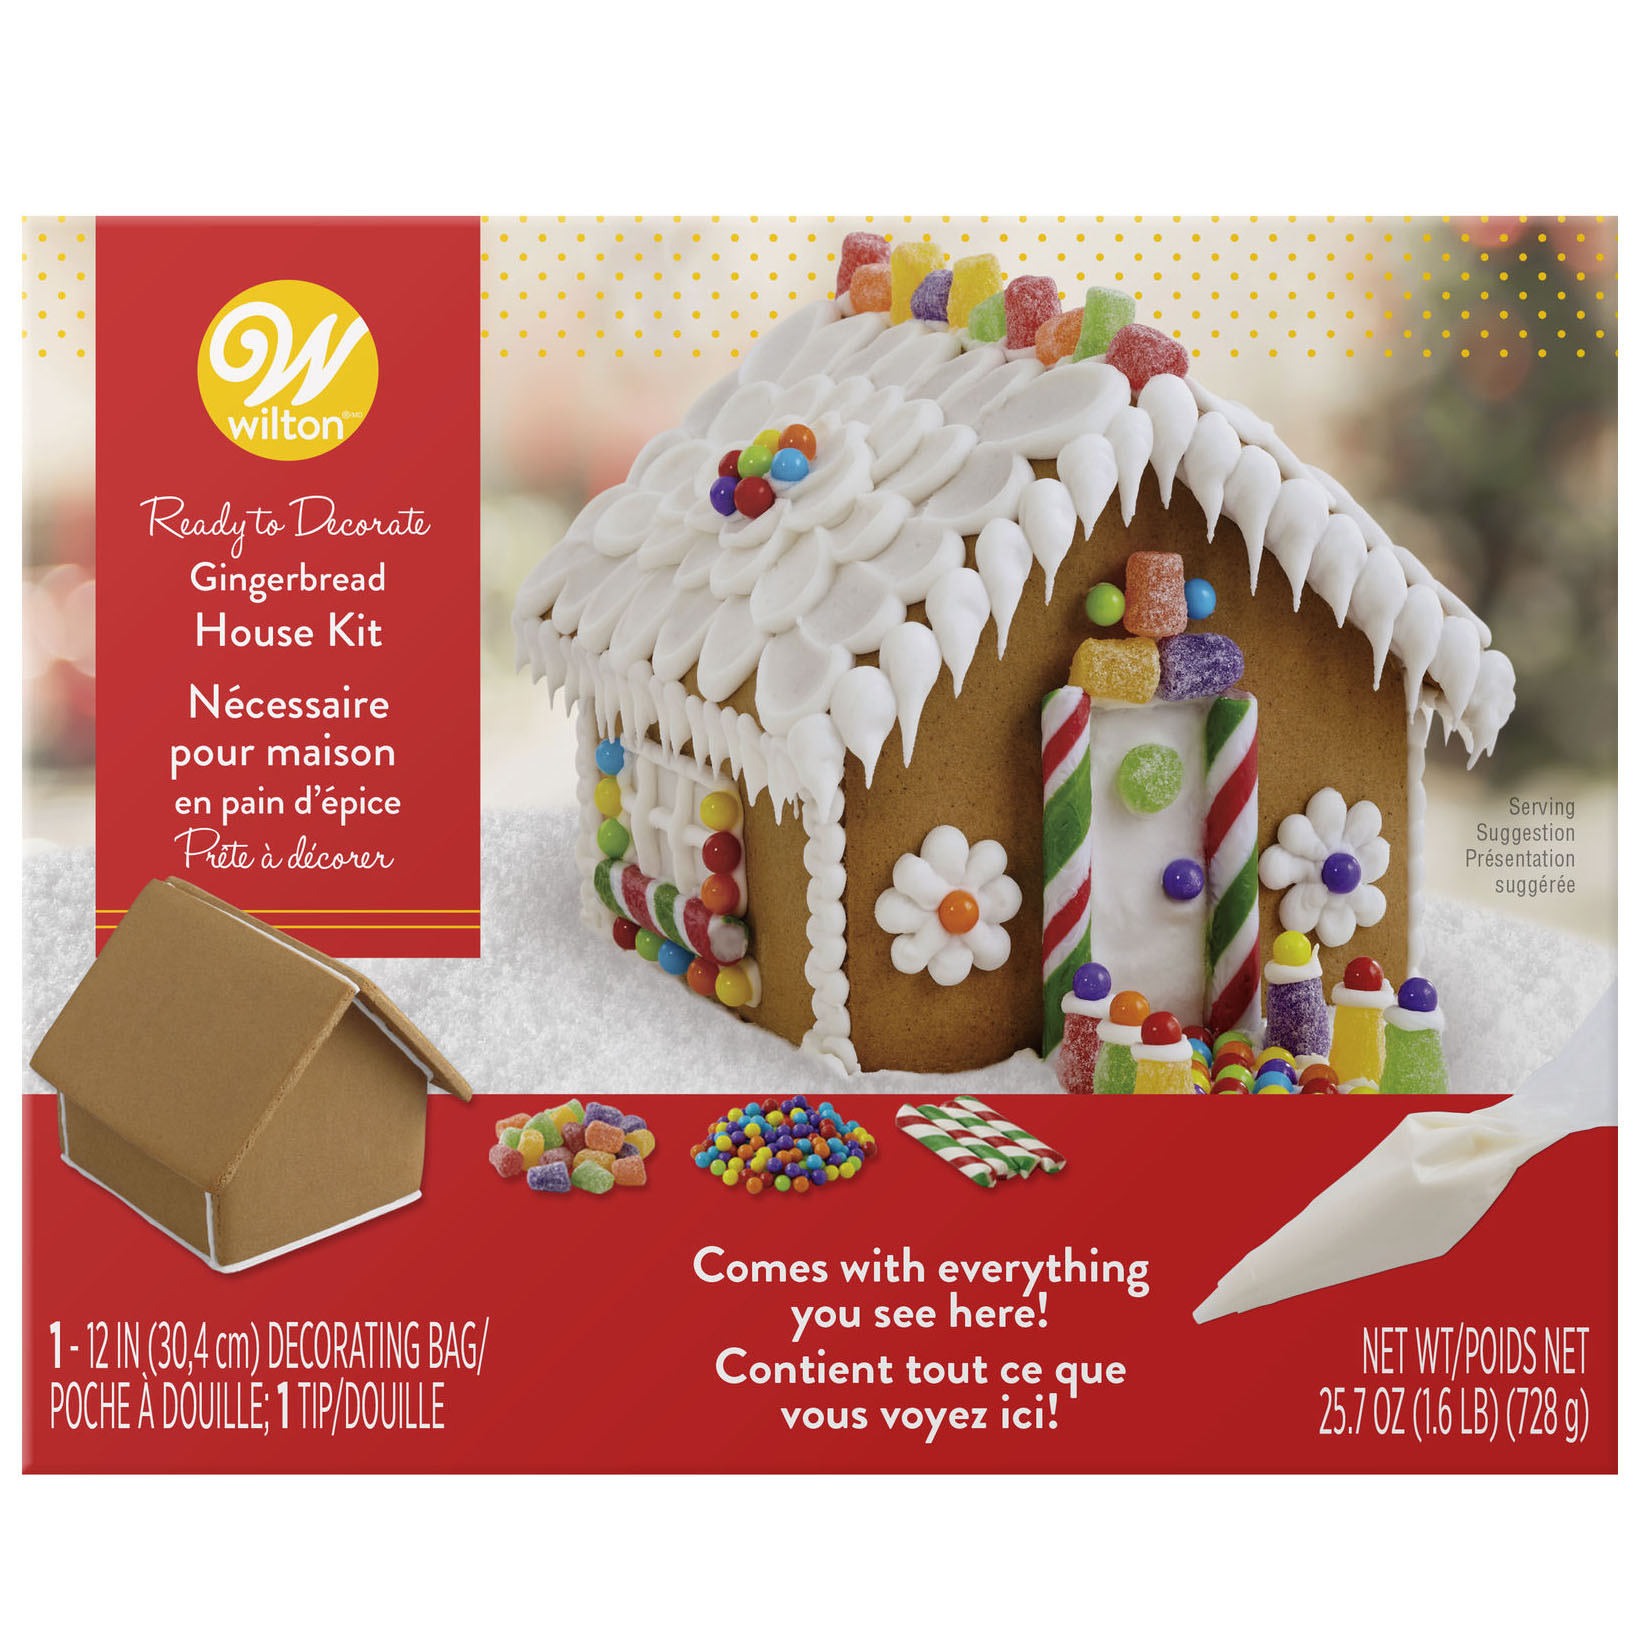 Fully Decorated Christmas Tree Decoration Kit.Ready To Decorate Gingerbread House Decorating Kit